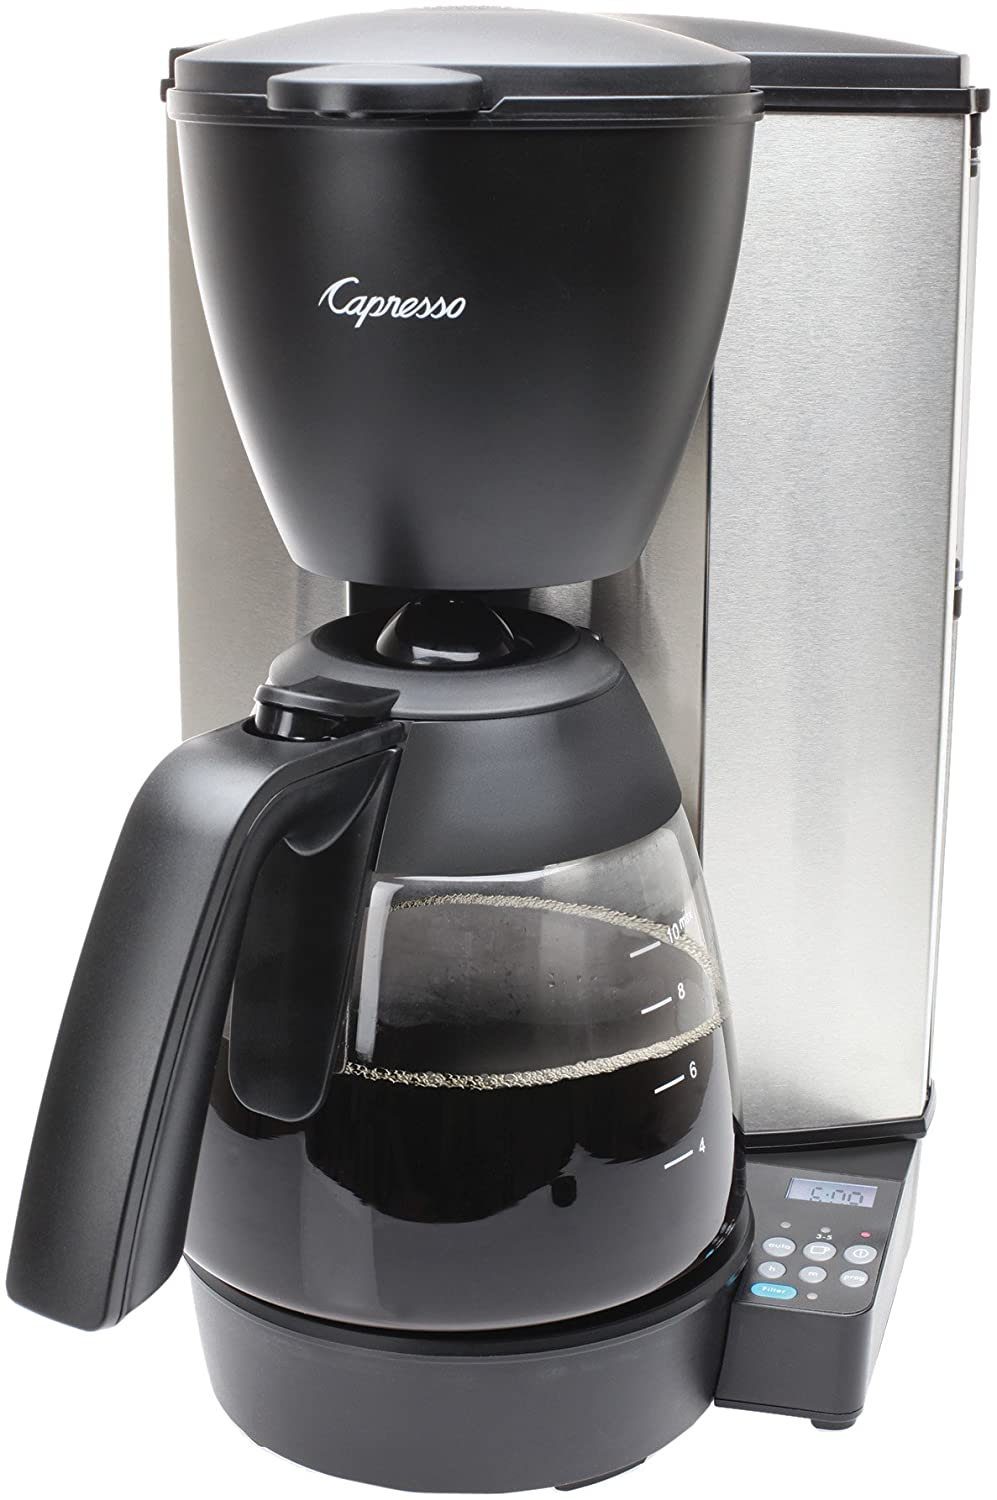 The Best Coffee Makers For The Money For Every Budget